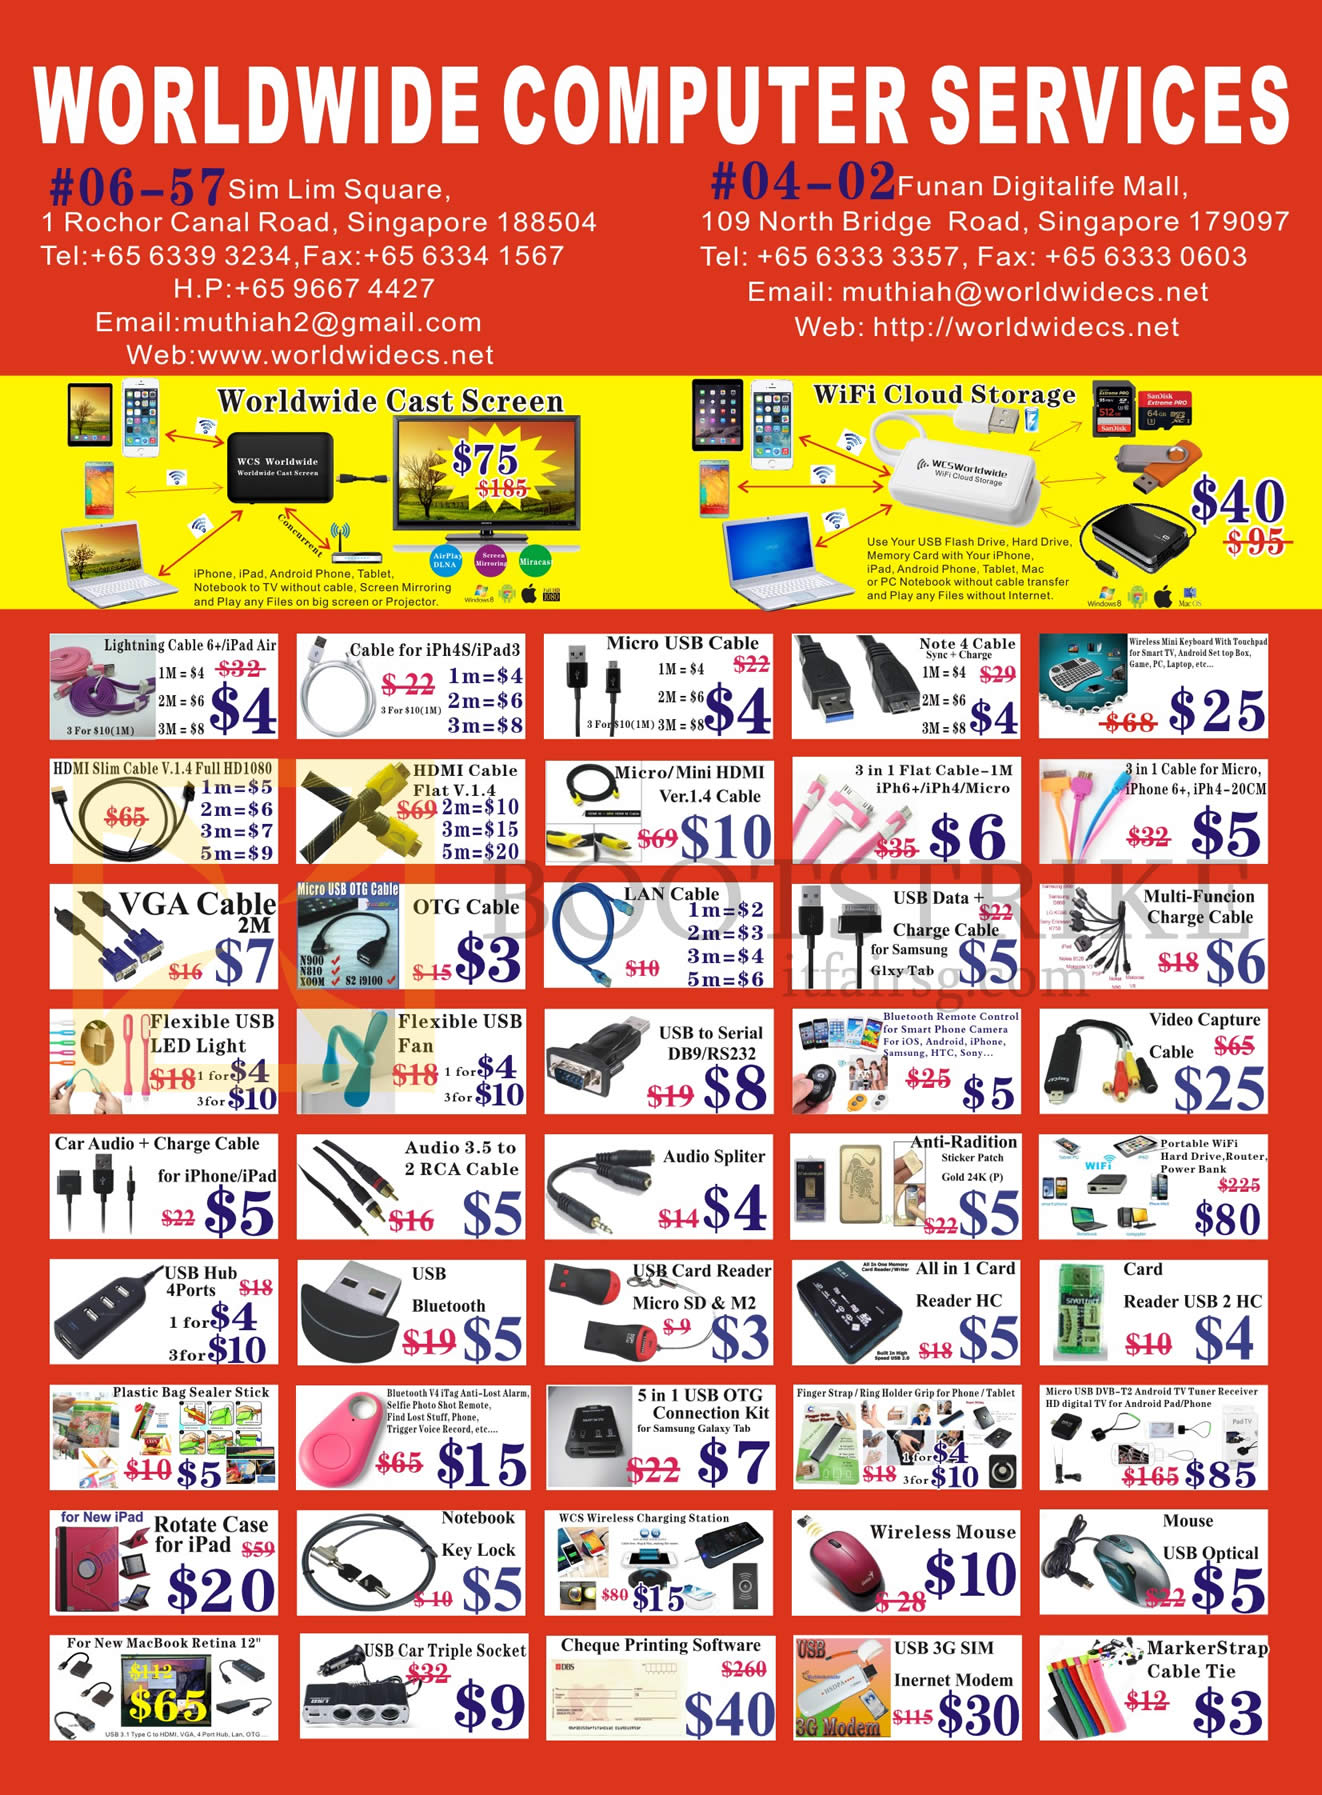 SITEX 2015 price list image brochure of Worldwide Computer Services Cables, USB Fan, USB Hub 4 Port, USB Card Reader, Mouse